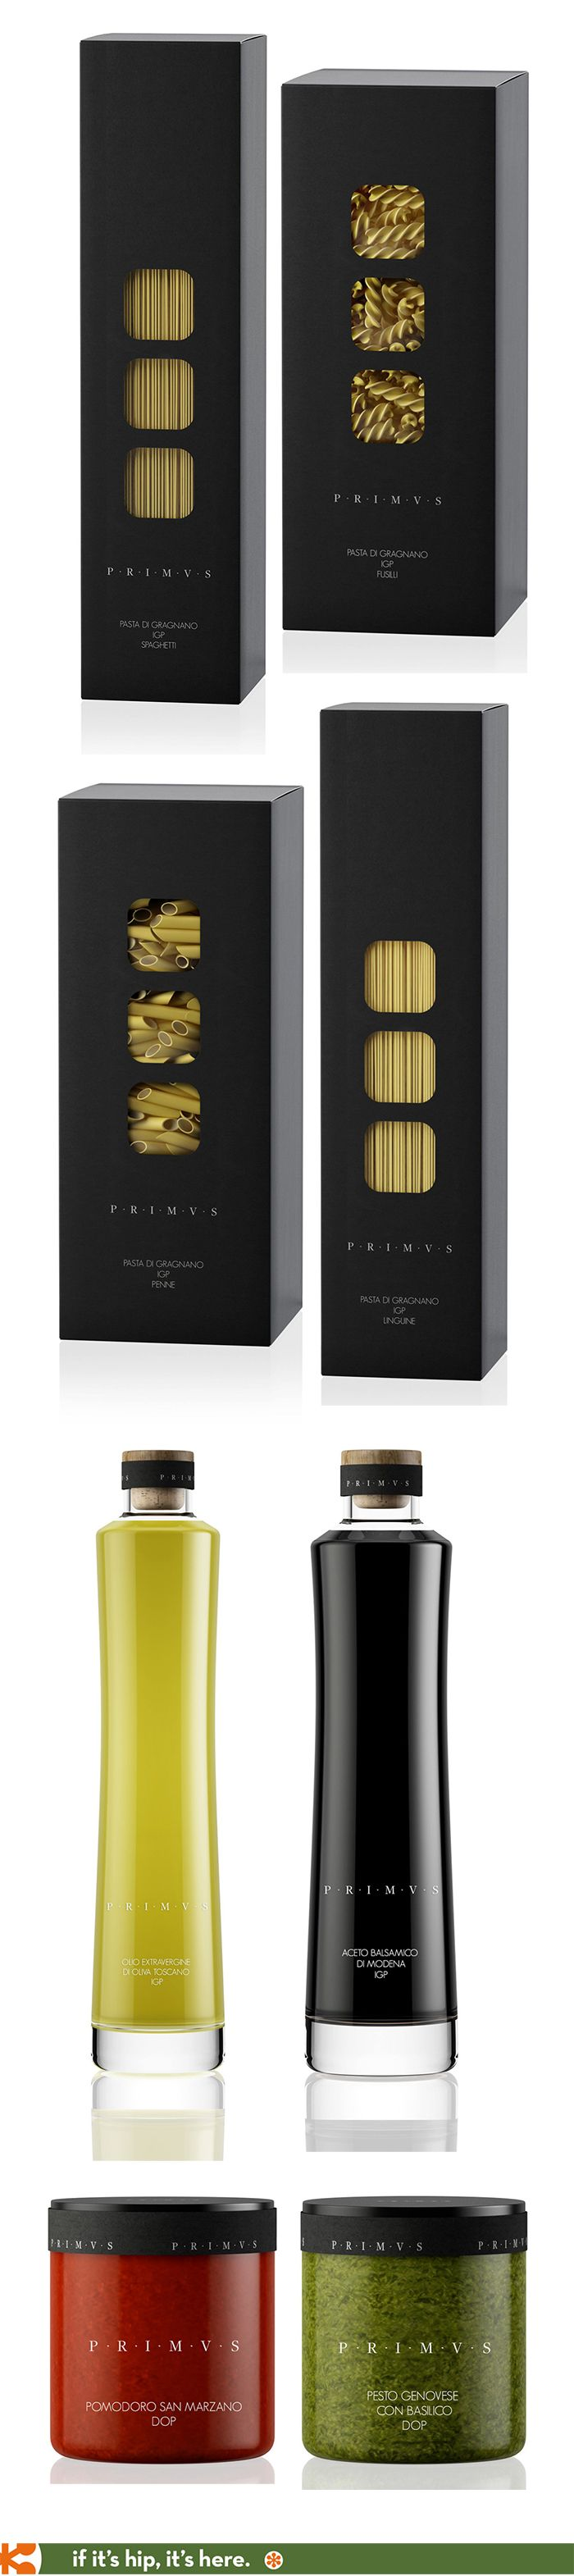 Dried pasta packaging, oil and vinegar bottles and pesto jars for Primvs Foods.